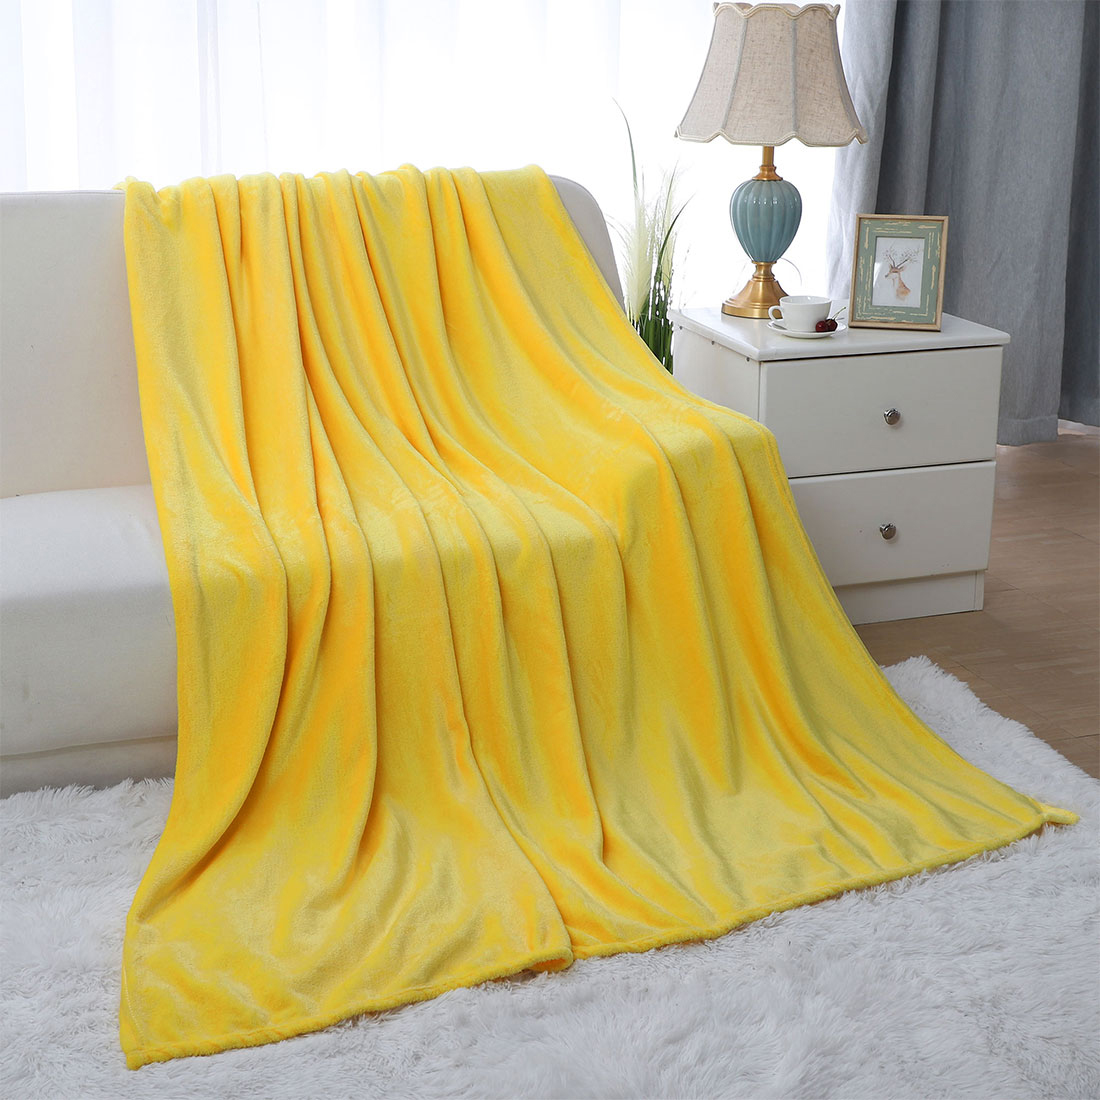 Soft Solid Plush Fleece Throw Blanket for Bedding Twin/Full/Queen